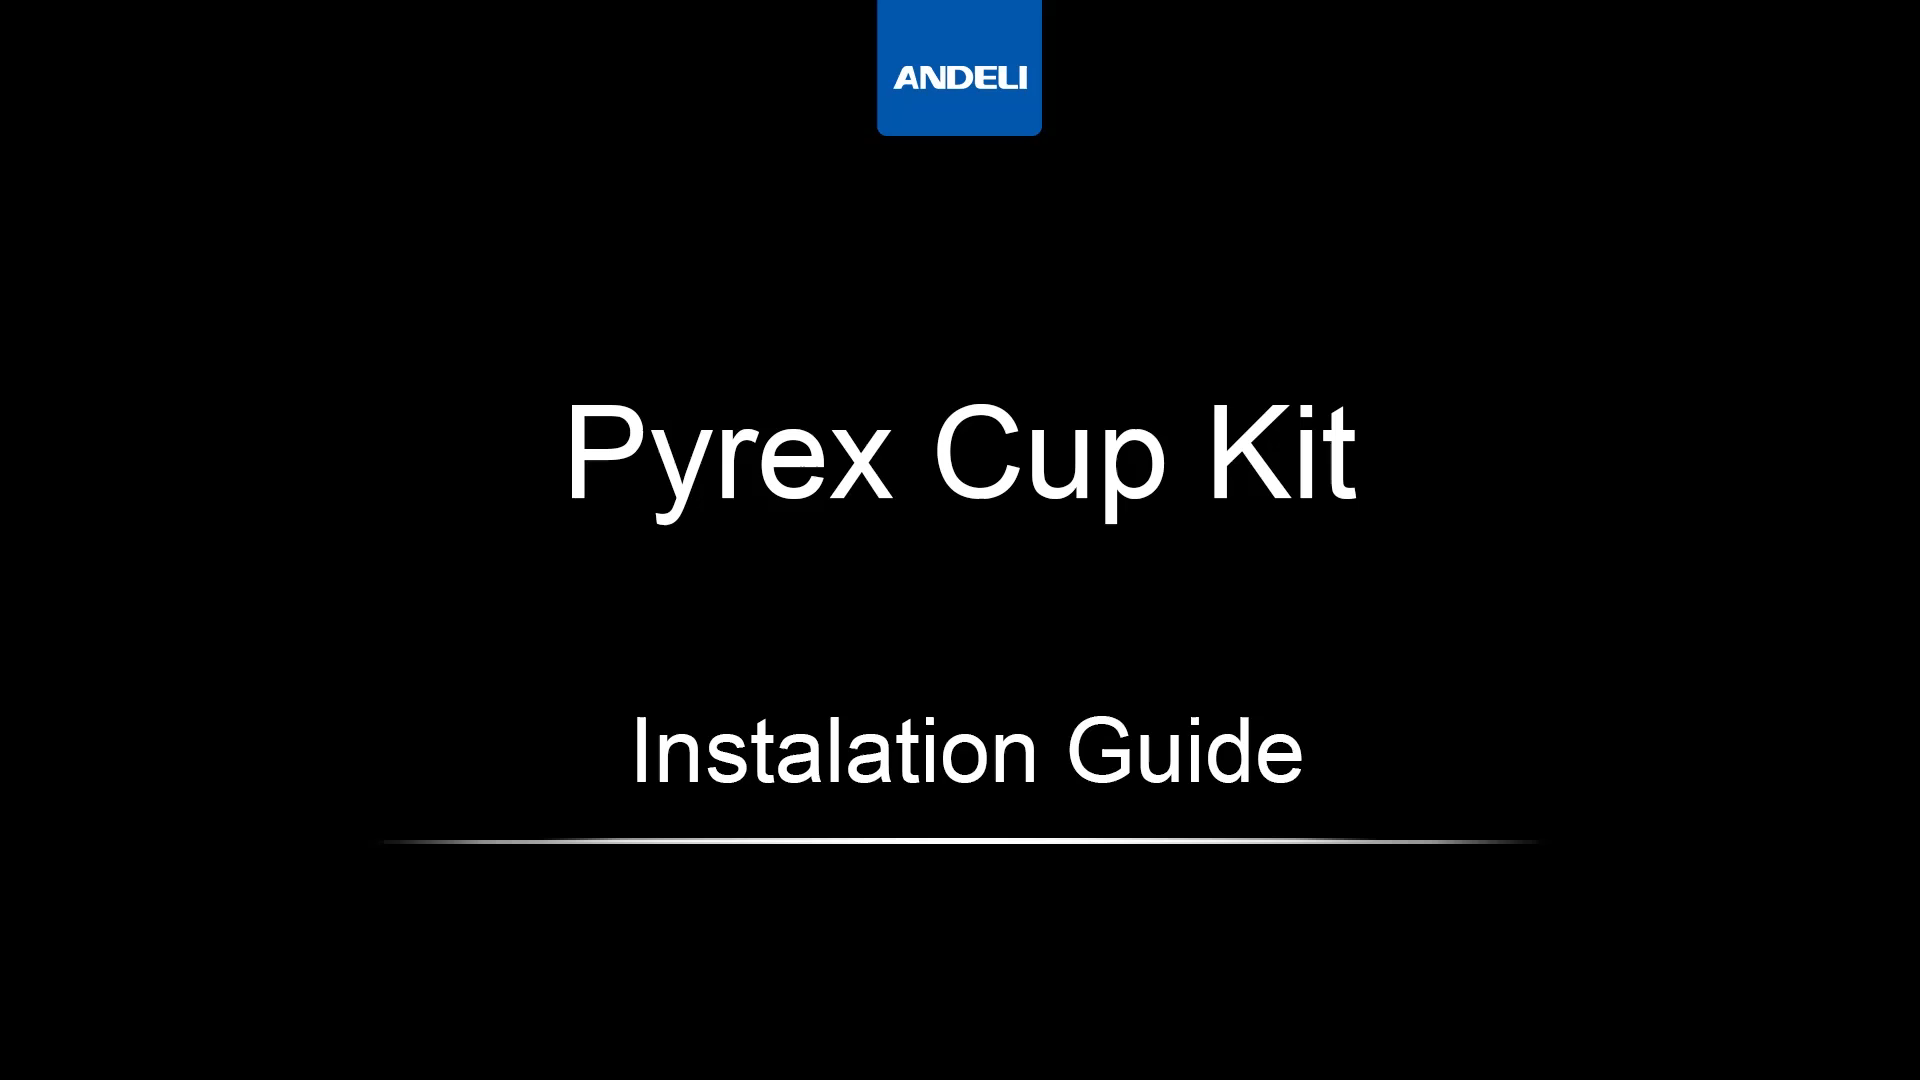 ANDELI Pyrex Cup Kit Practical Accessories TIG welding torch Kit Argon Arc Tool For WP TIG 17/18/26